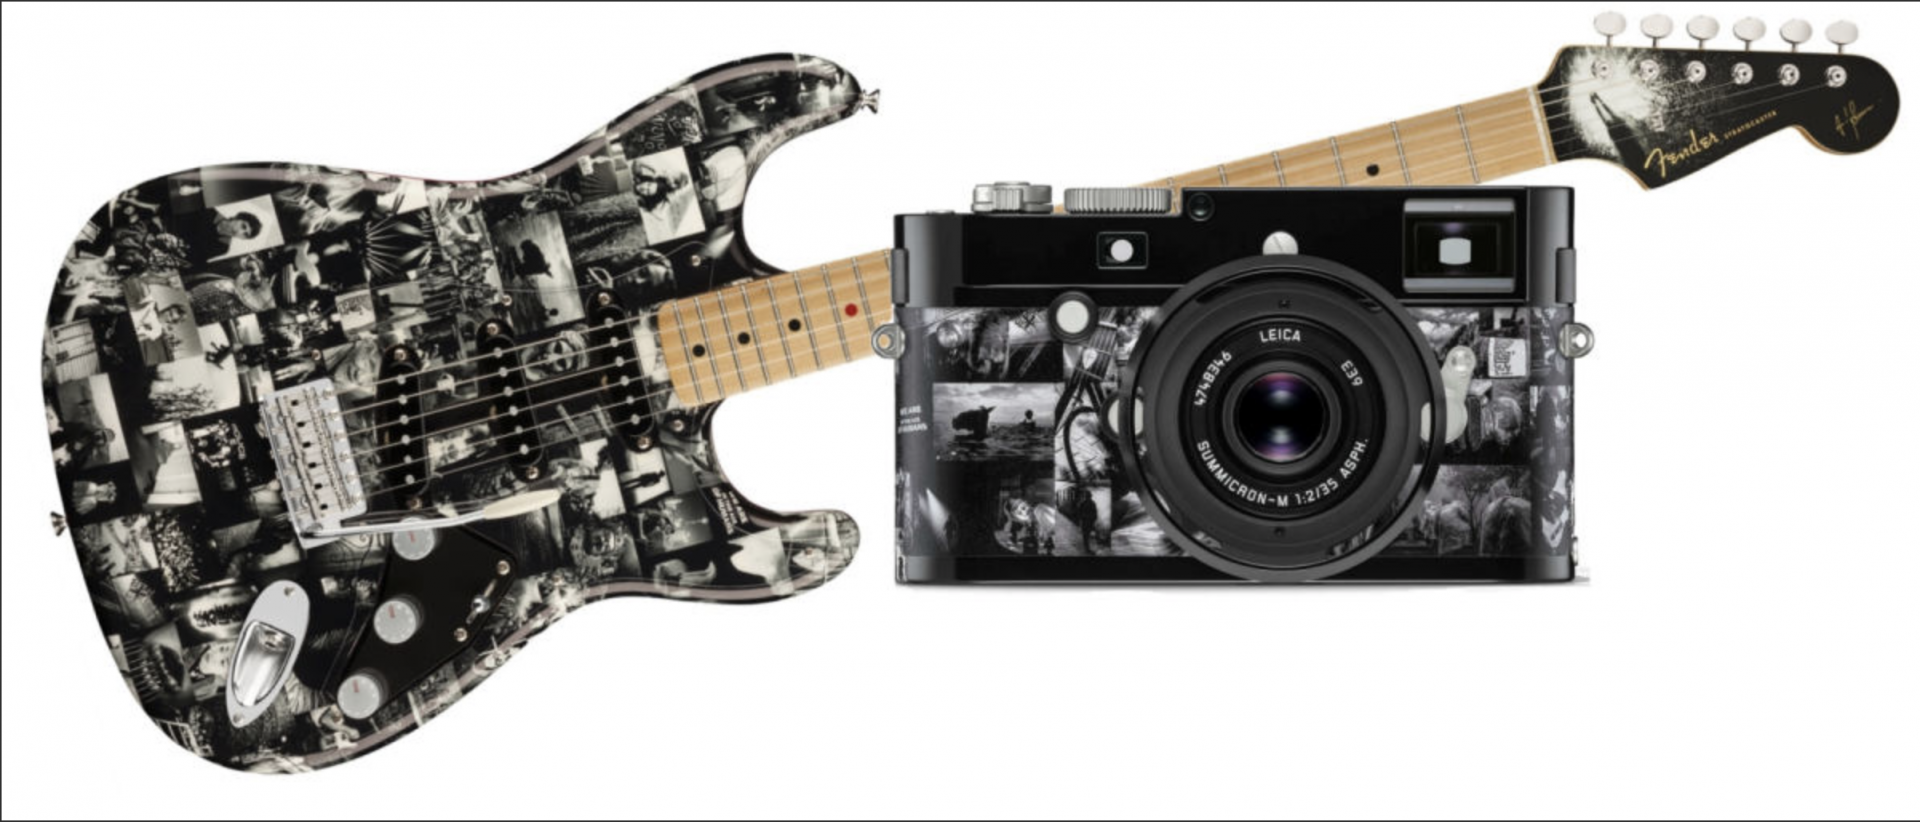 Matching set. The camera costs 15,000 dollars, no news on the cost of the Fender guitar